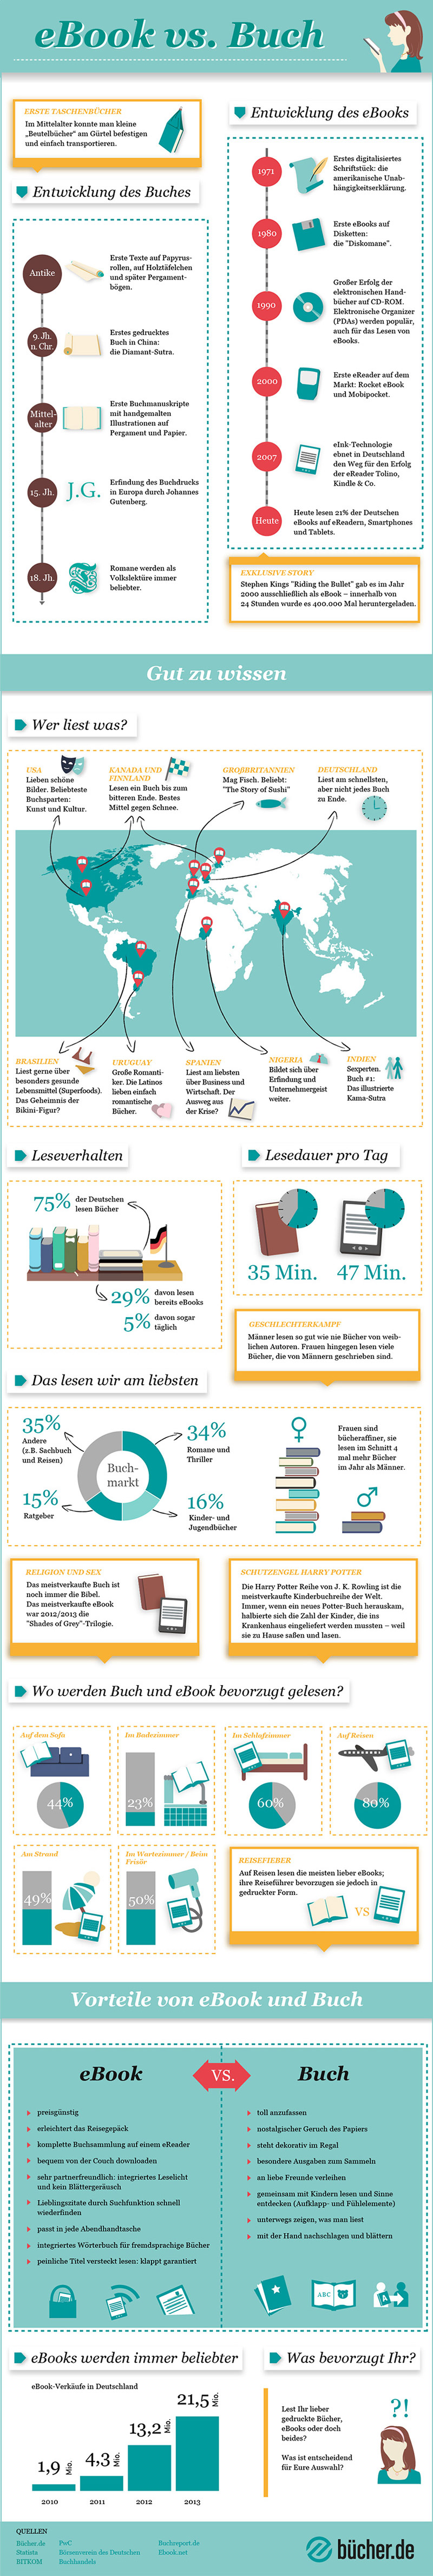 Infografik eBook vs. Buch